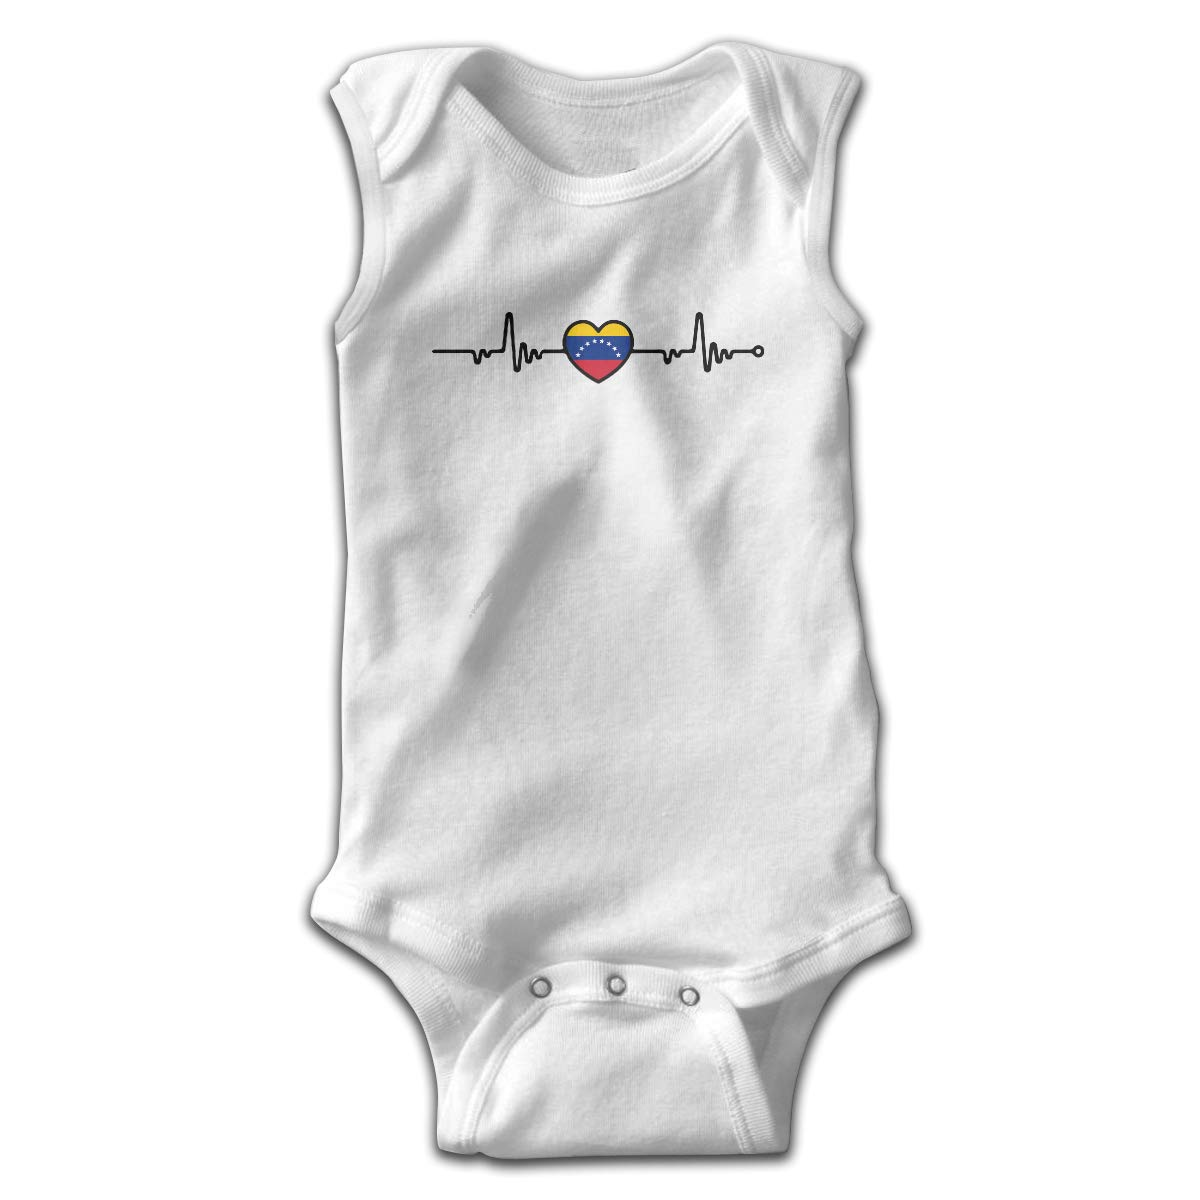 Venezuela Flag Heartbeat Line Heart Printed Baby Boy Girl Sleeveless Bodysuit Jumpsuit Outfits